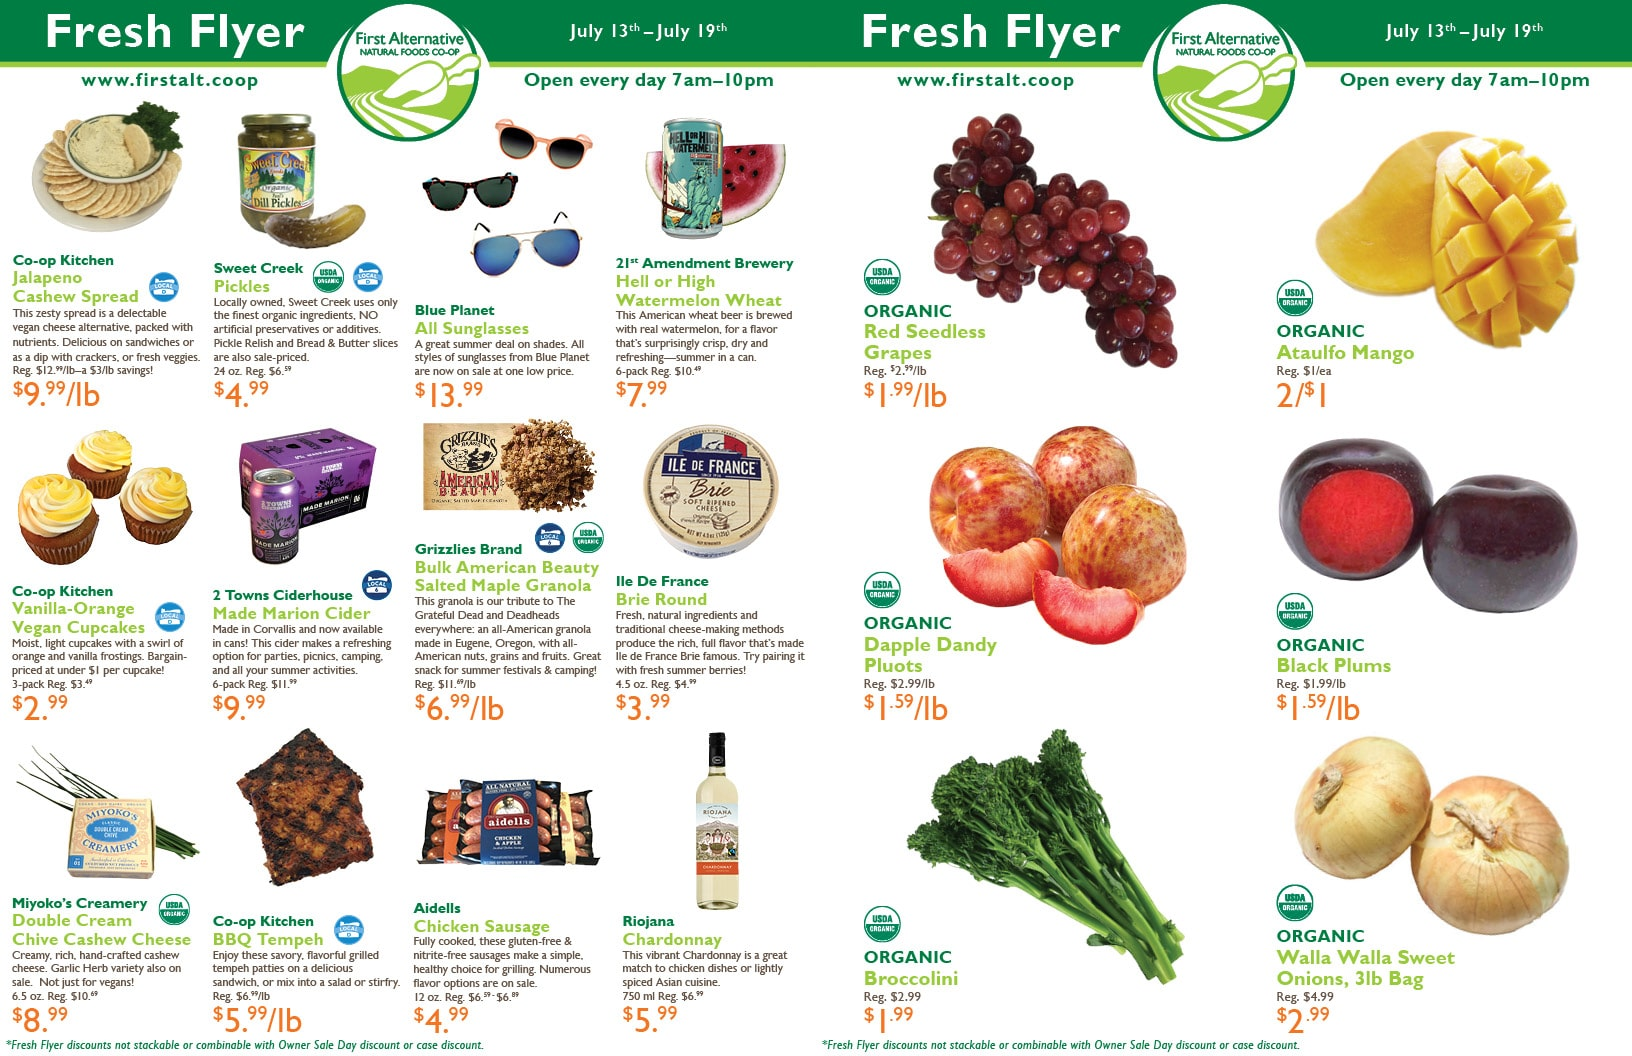 First Alternative Co-op Fresh Flyer July 13-19